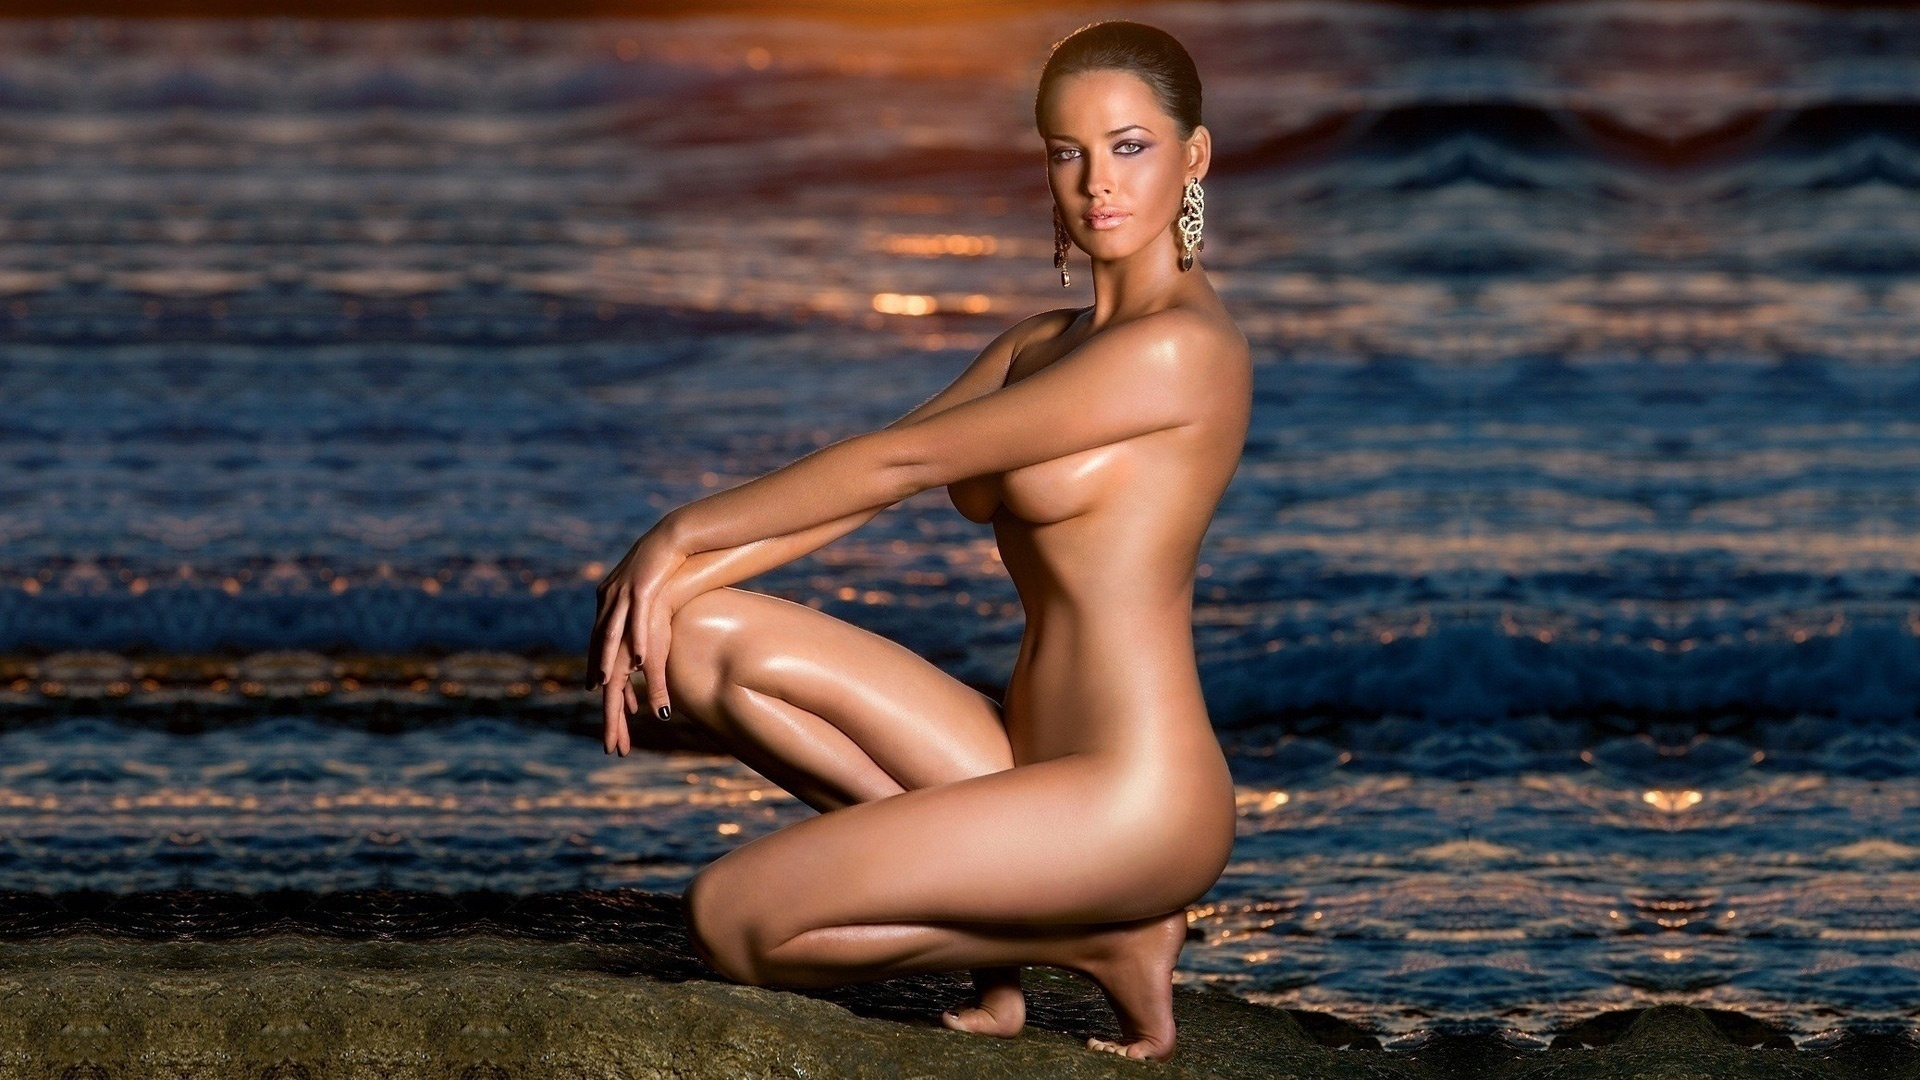 Fhm models nude uncensored